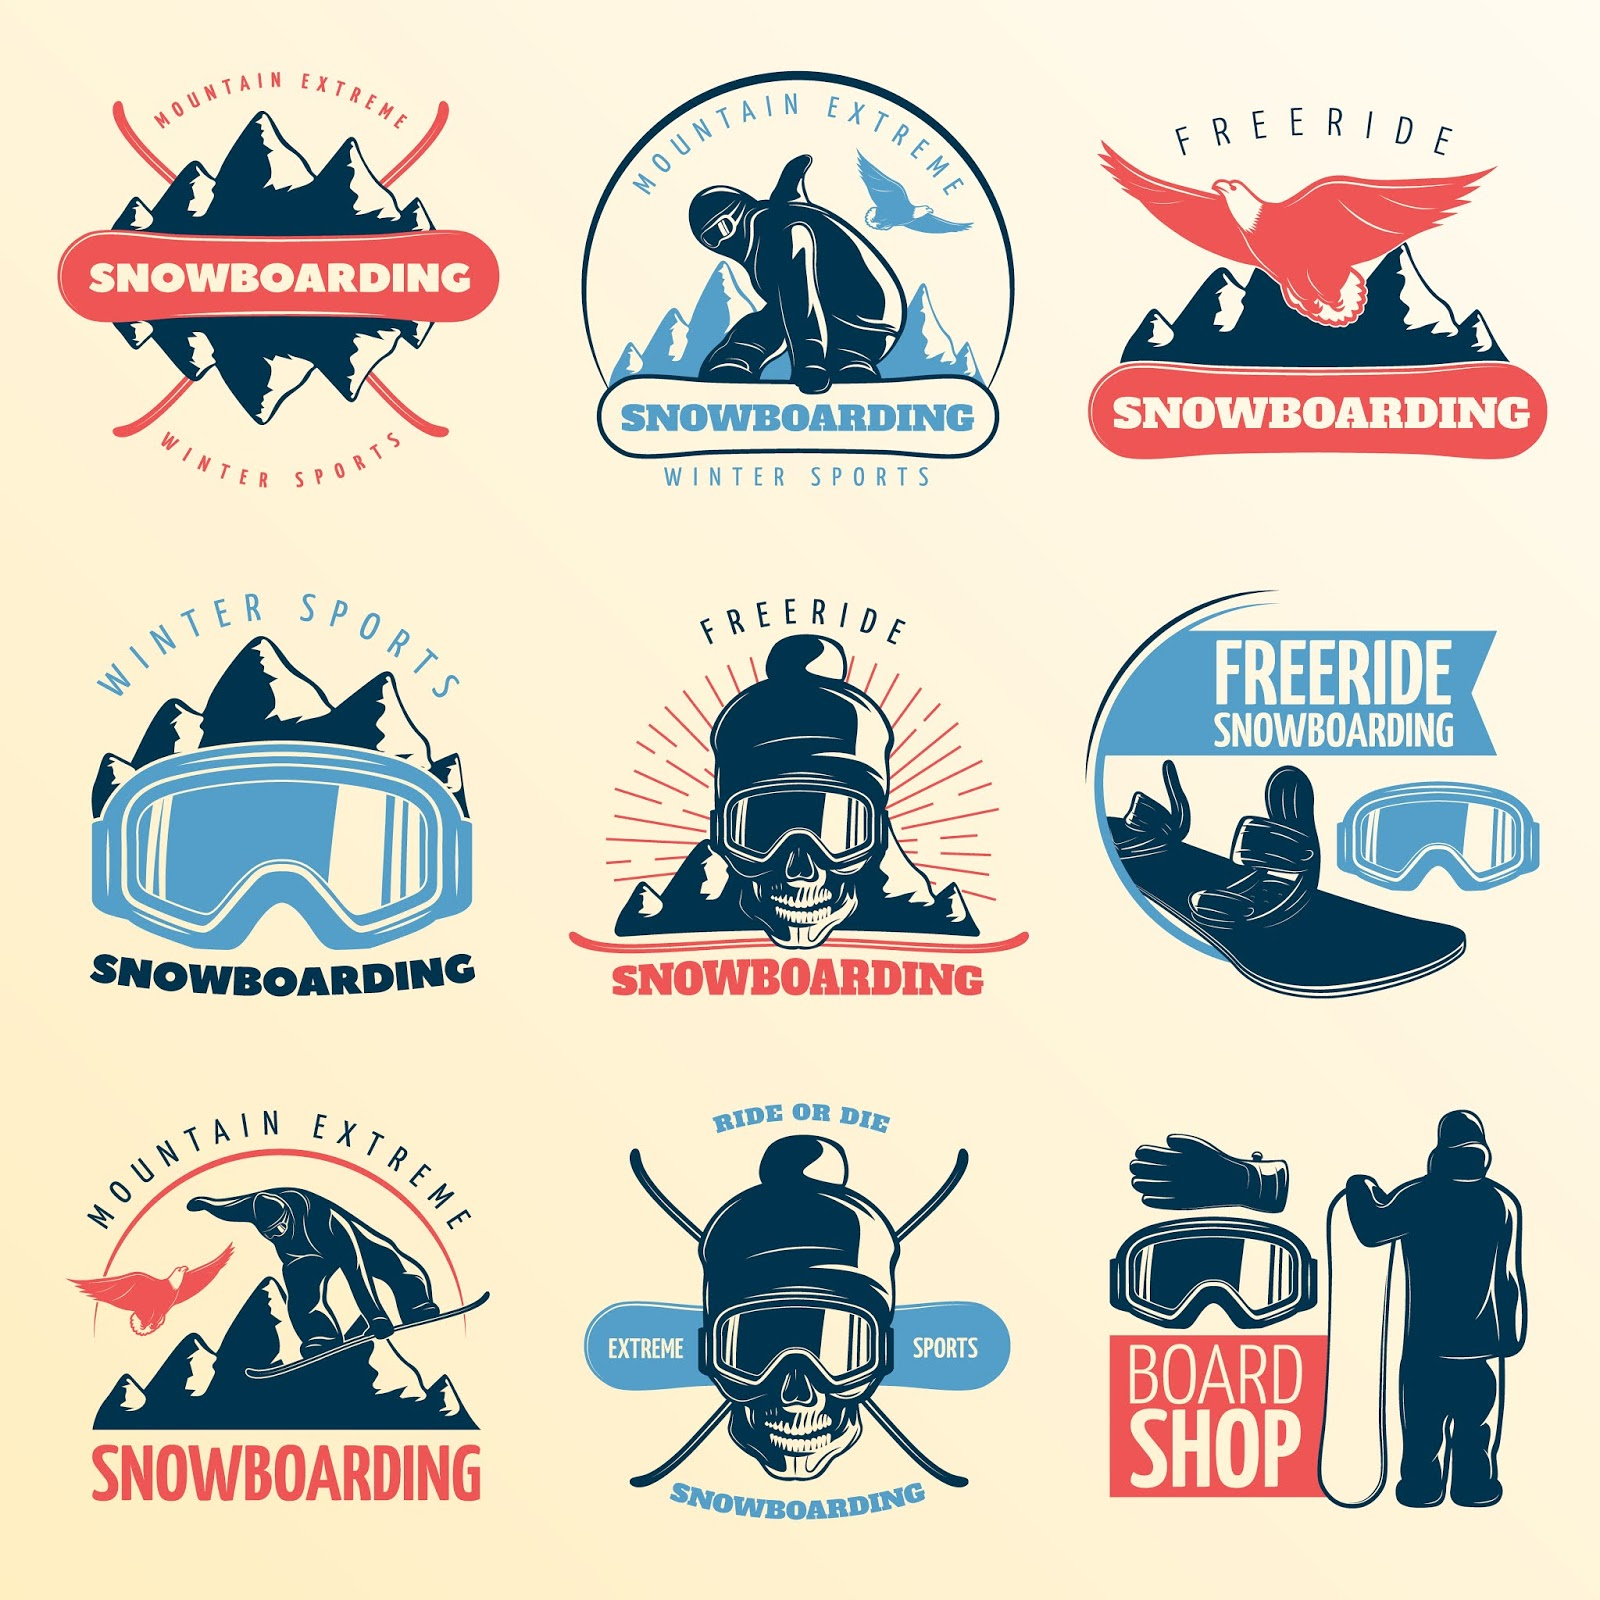 Snowboarding Emblem Set Color With Mountain Extreme Winter Sports Freeride Board Shop Descriptions Vector Illustration Free Download Vector CDR, AI, EPS and PNG Formats